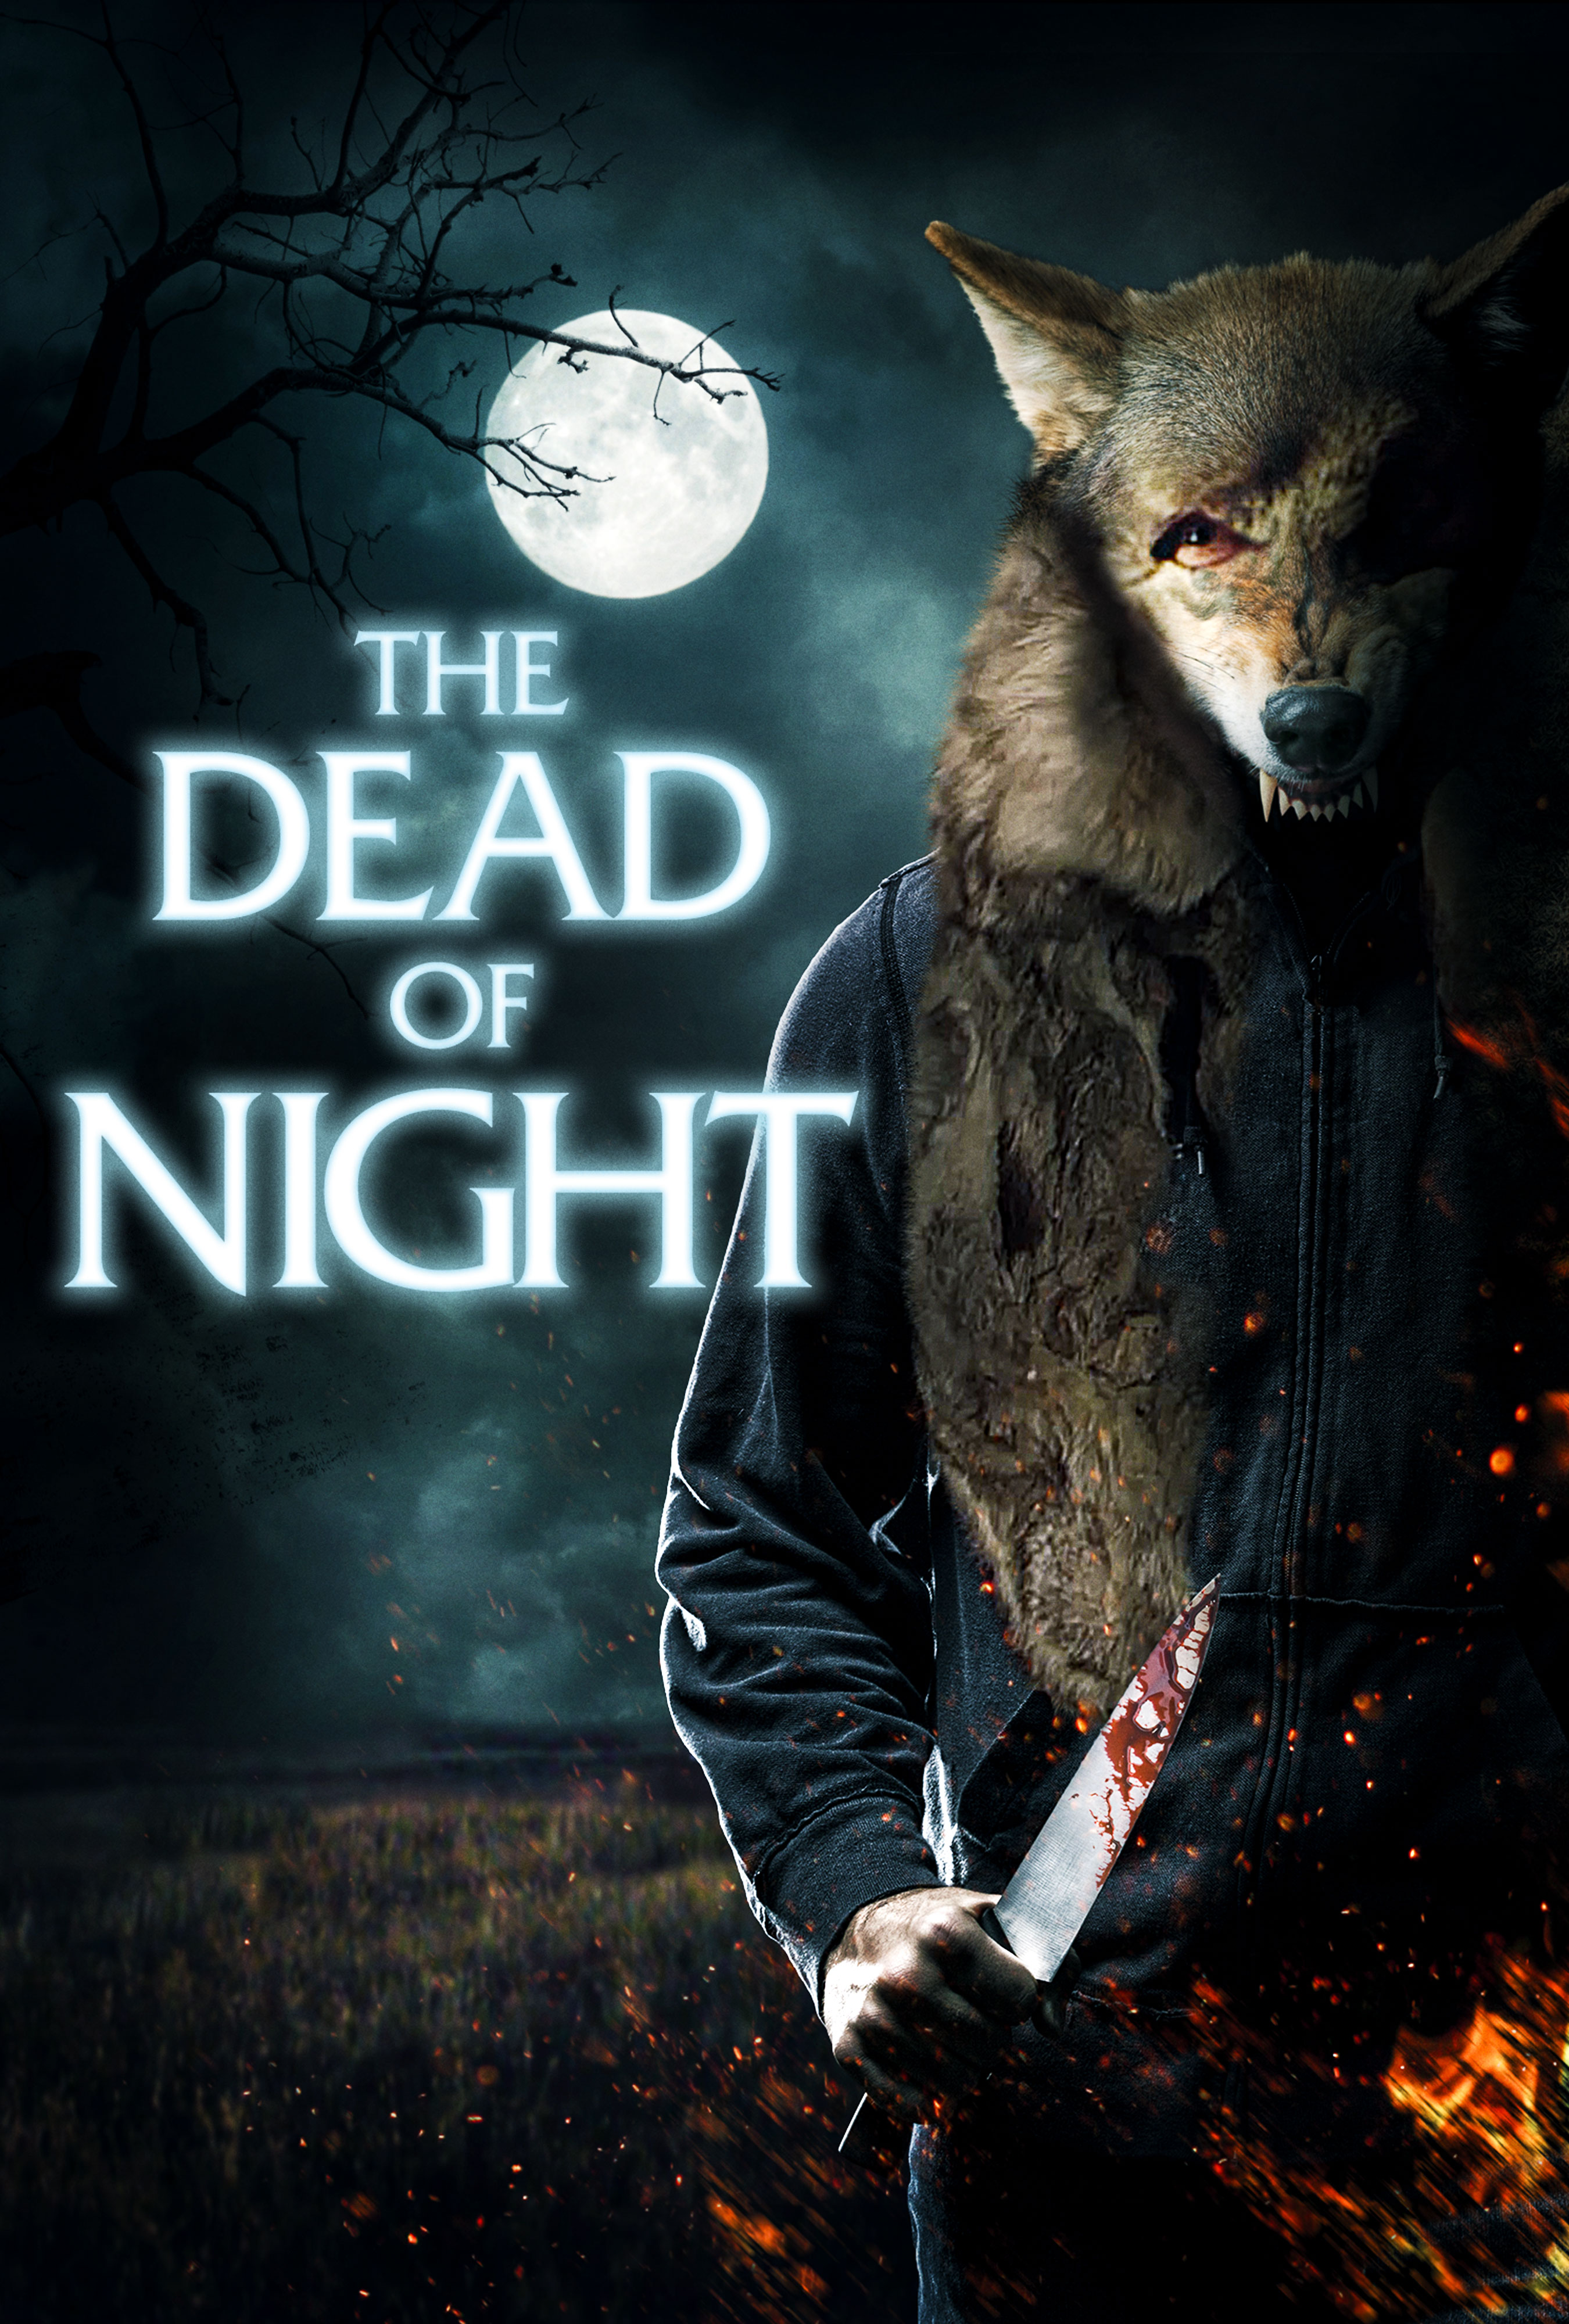 The Dead of Night poster image